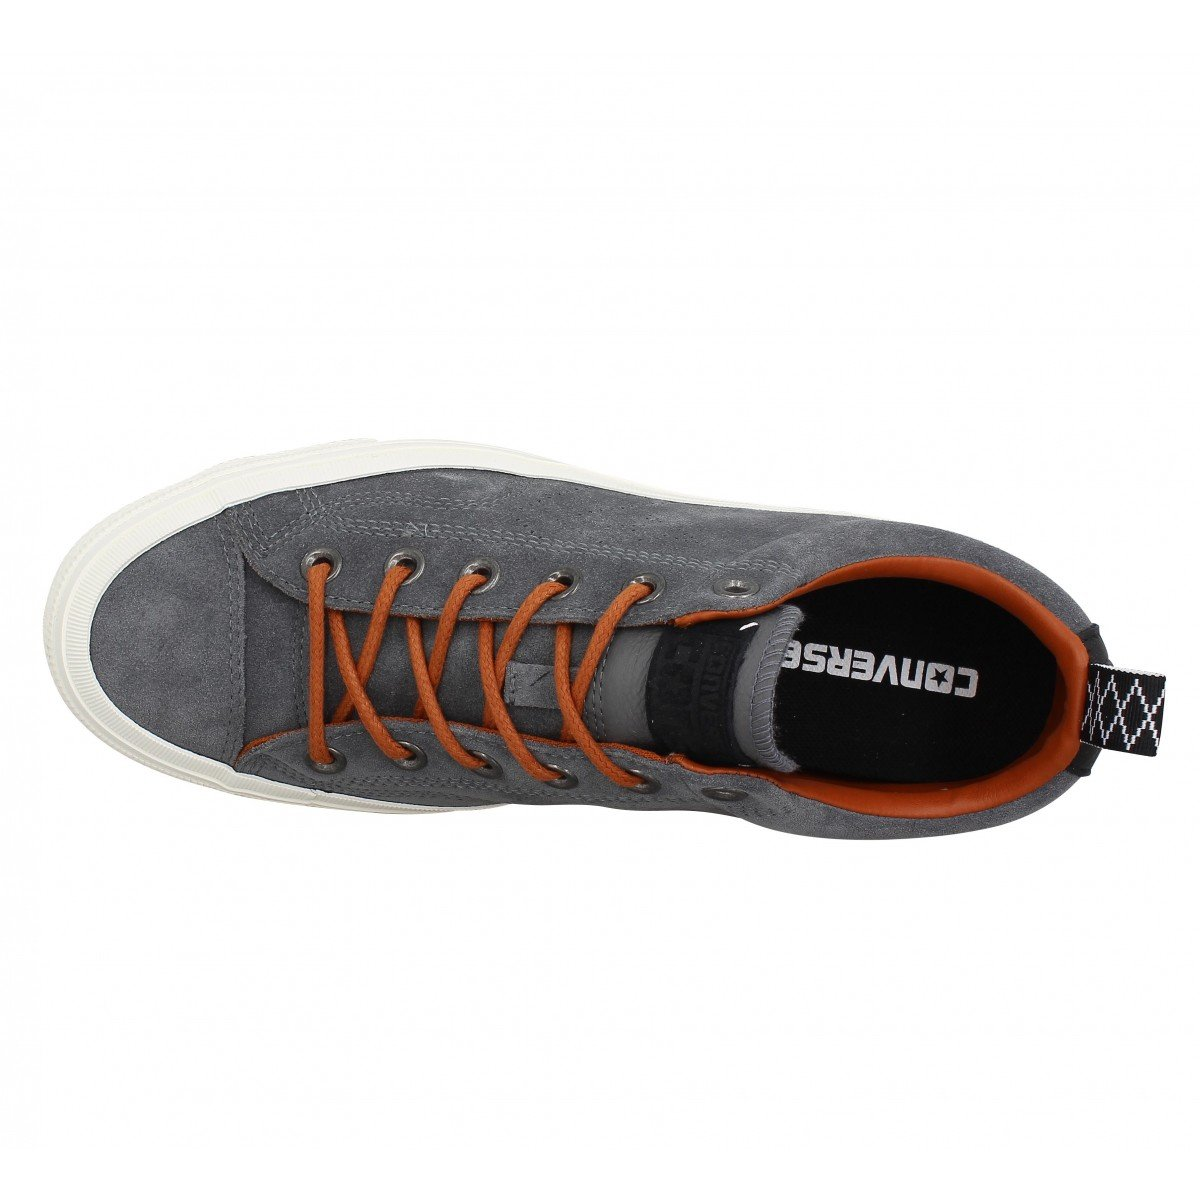 67f6d353e97d Converse Star Player Premium Suede Ox  Amazon.co.uk  Clothing